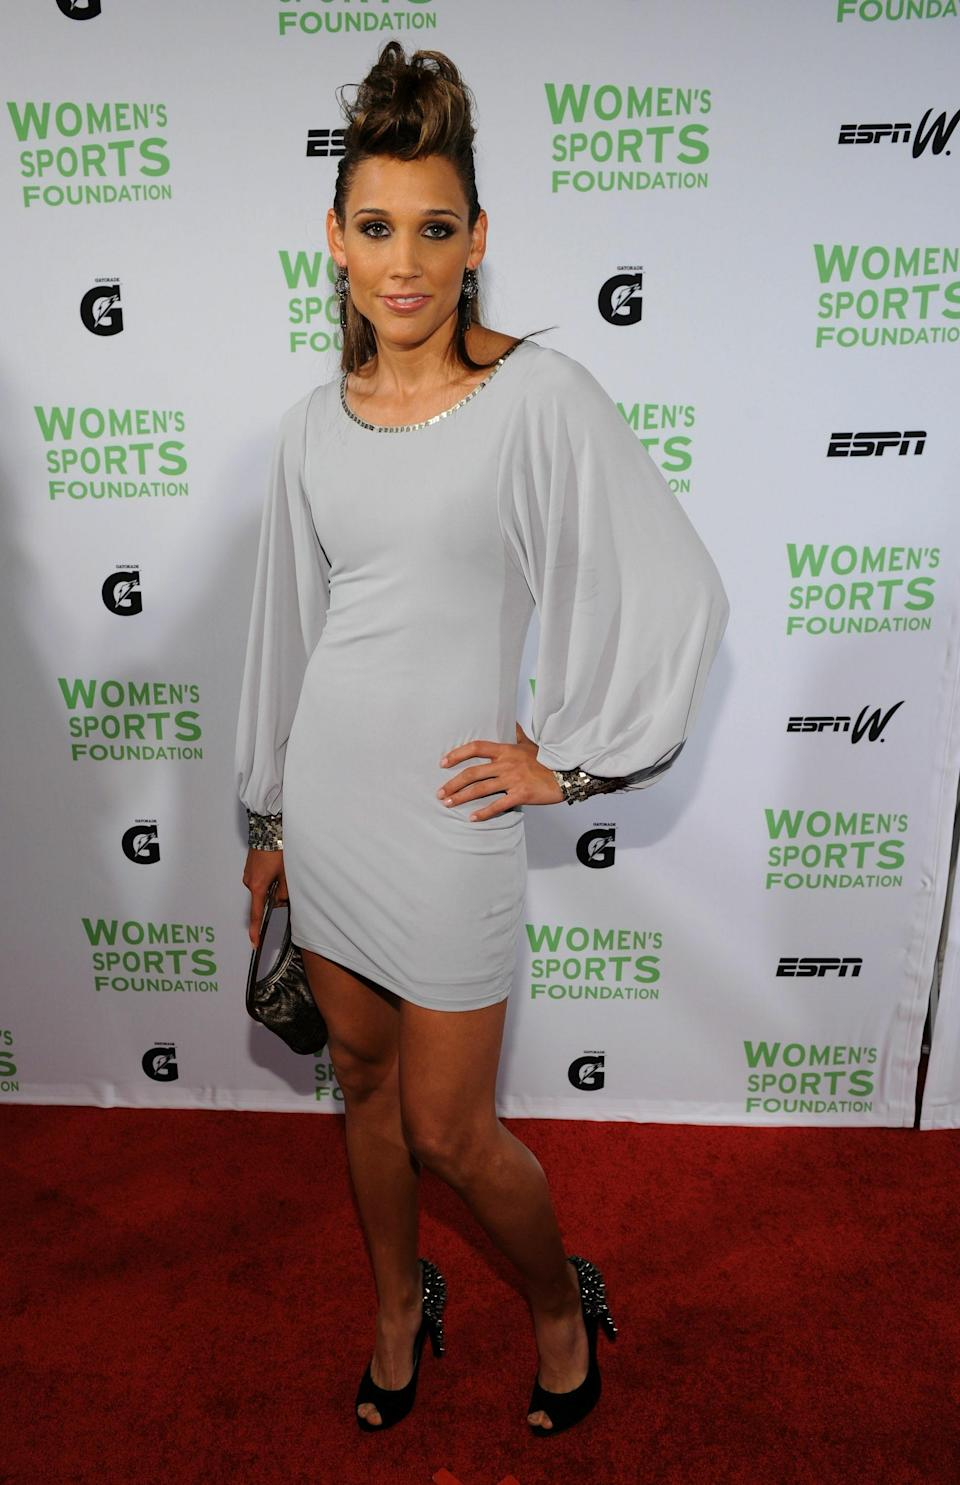 Olympic Track and Field athlete Lolo Jones attends the 32nd Annual Salute to Women in Sports gala at The Waldorf-Astoria on October 12, 2010 in New York City. (Photo by Bryan Bedder/Getty Images)